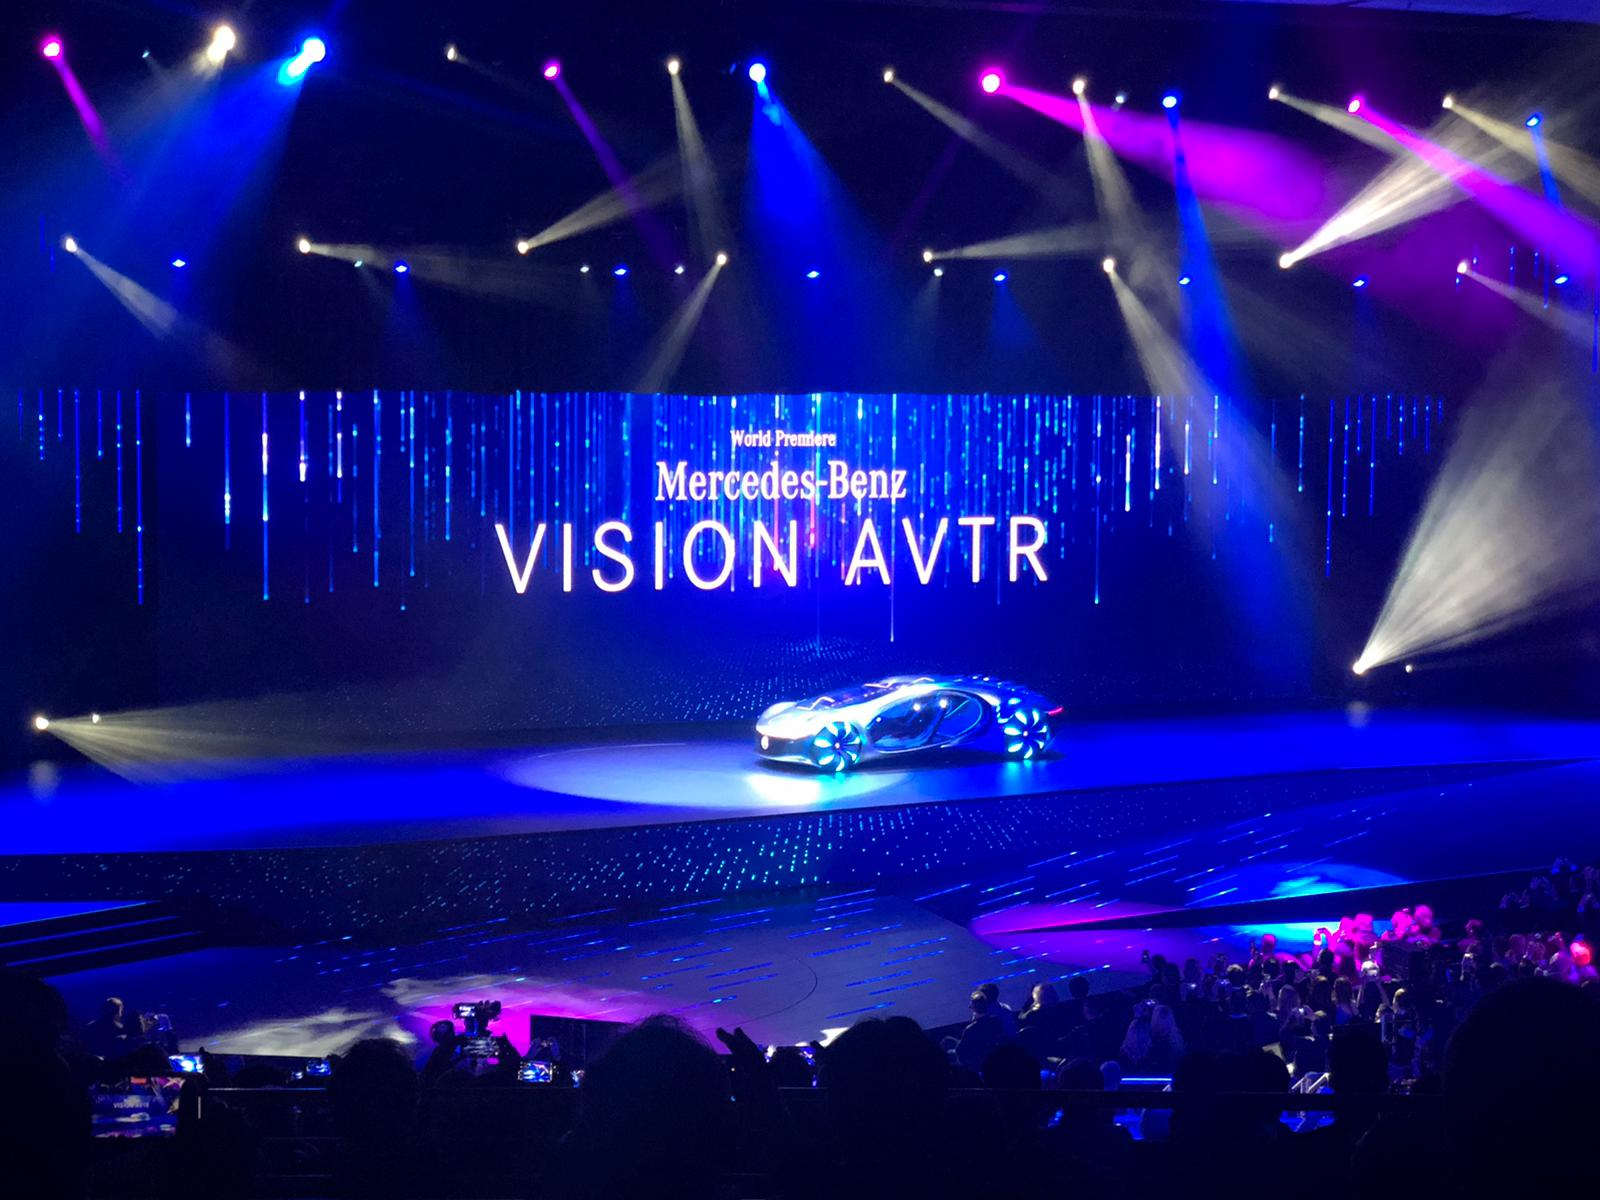 Mercedes-Benz introduced its concapt car, VISION AVTR at the show, capturing the eyeballs of all the show attendees